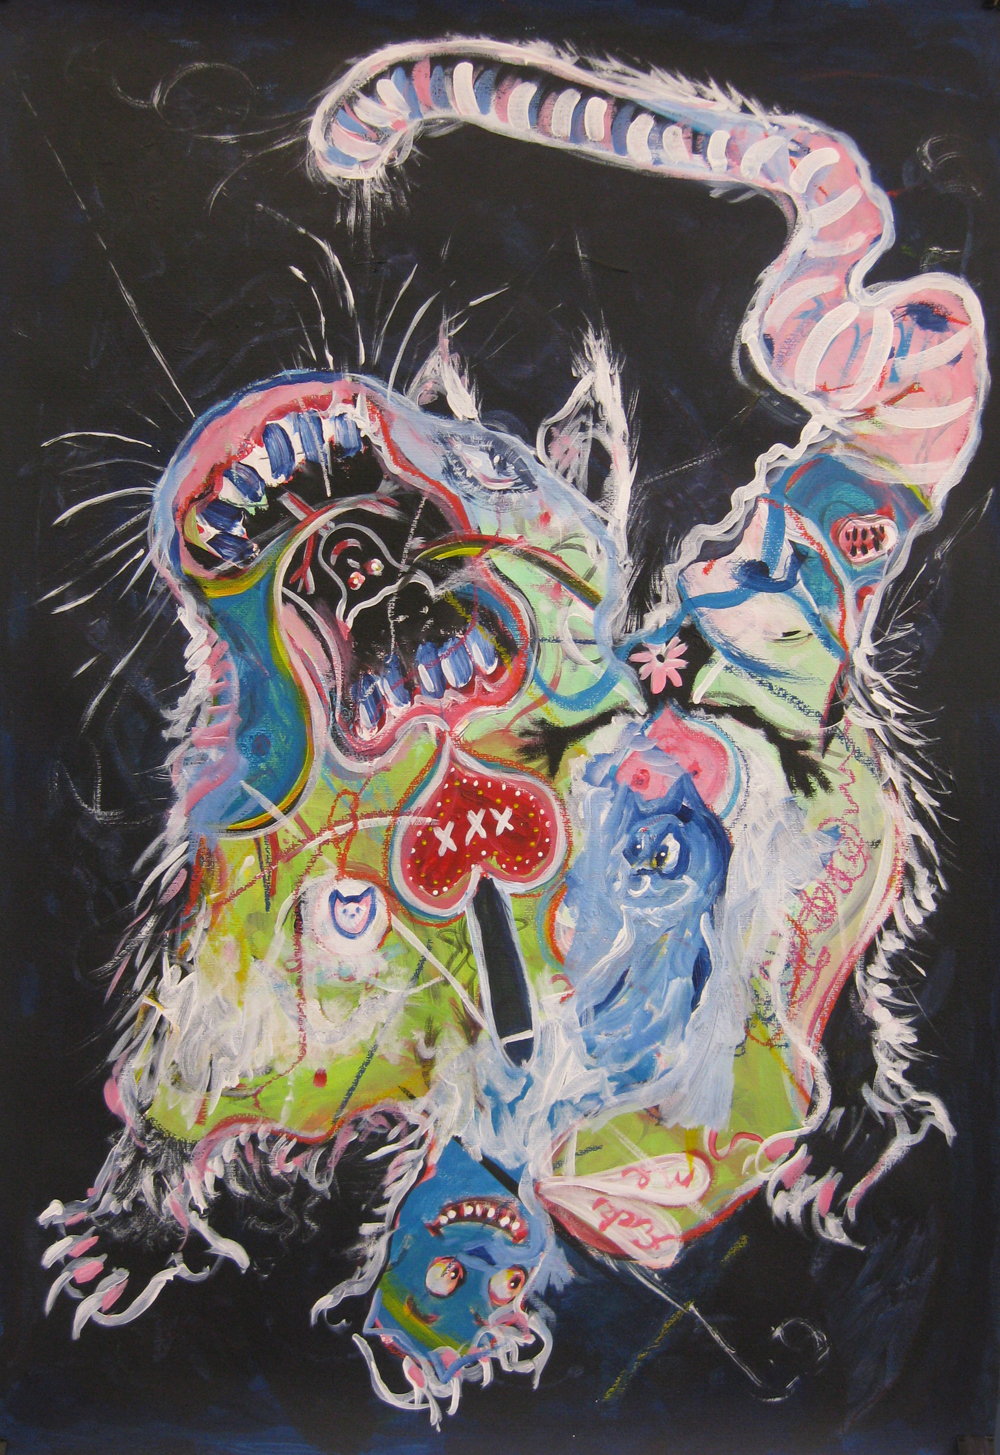 Cat  70 x 100  Mixed media on paper